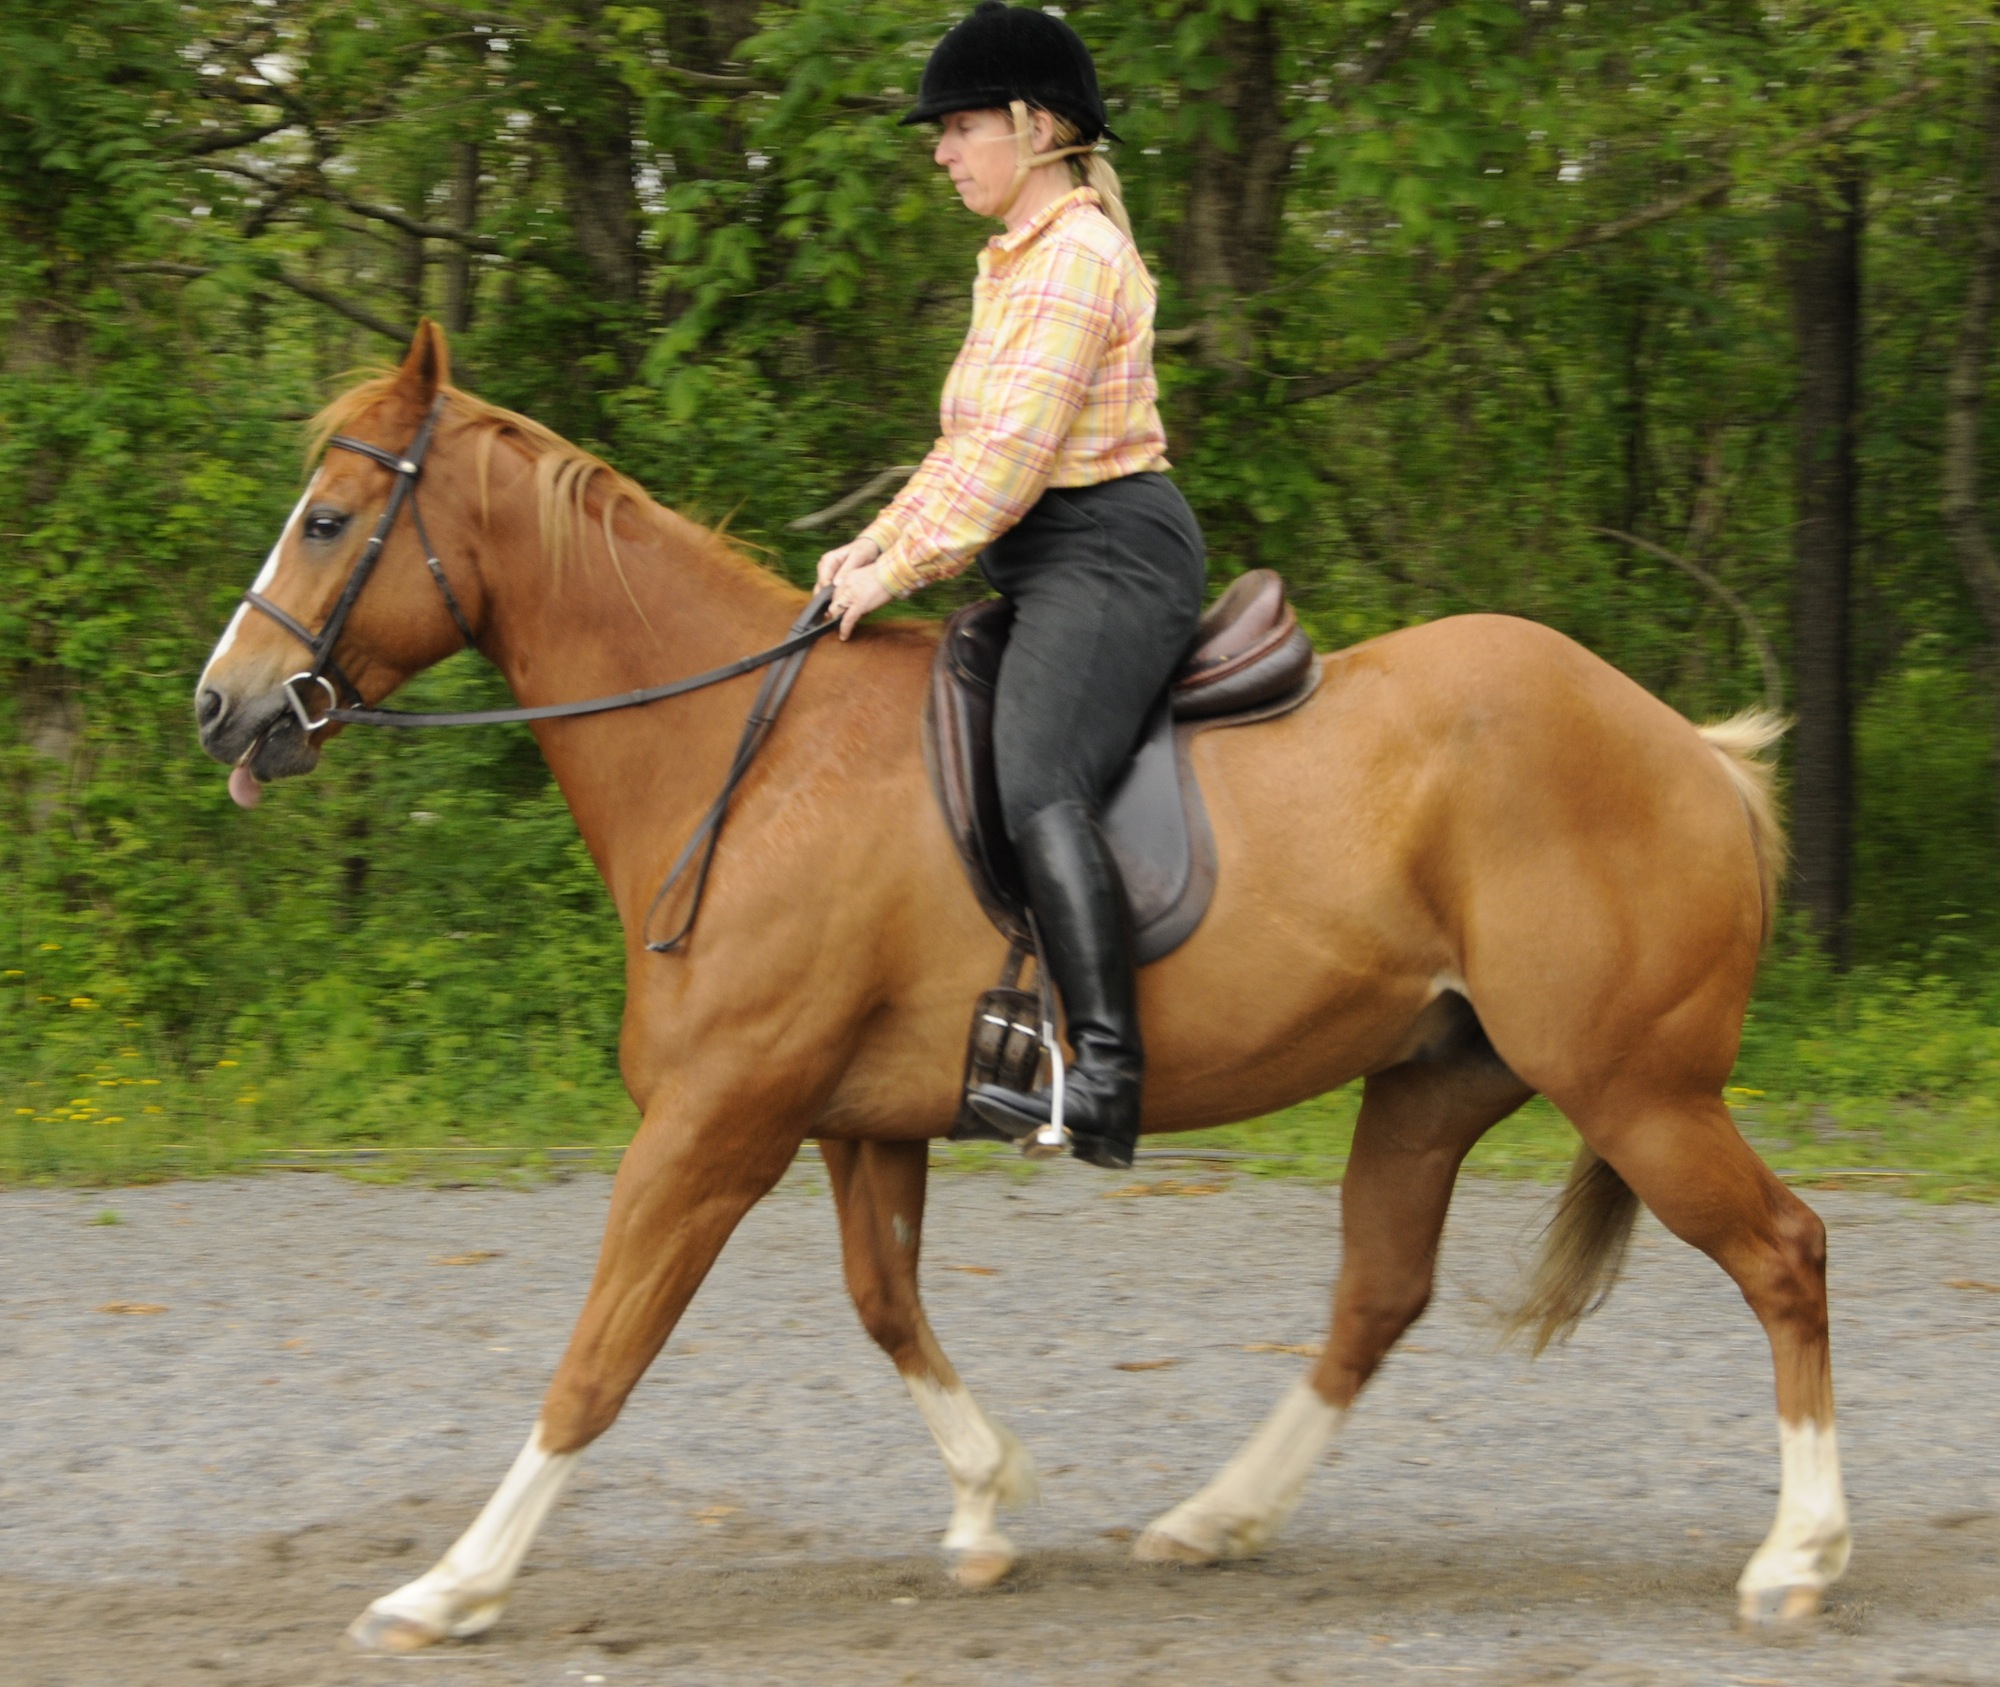 How to Back Up on a Horse recommendations